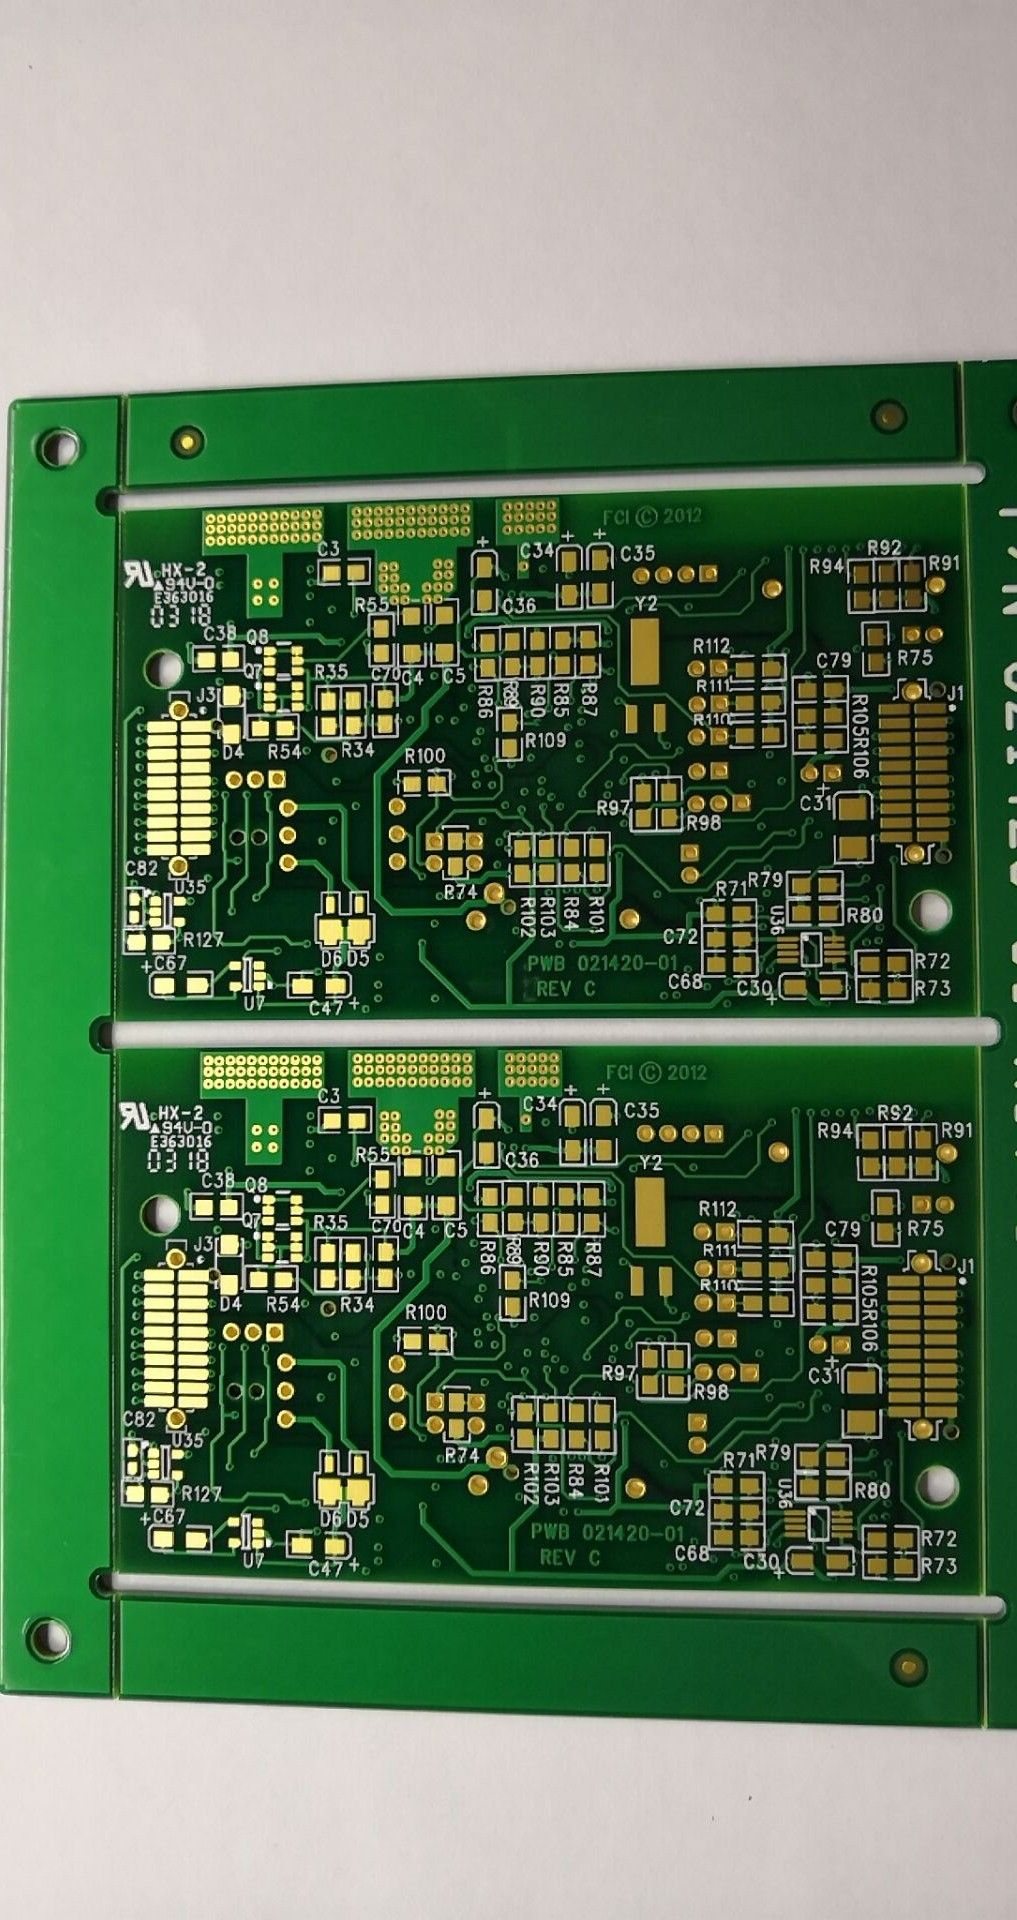 Pin By Dale Hx Circuit Xiao On High Quality Pcb Board Assembly Pcba Production Buy Productioncircuit Boards Planks